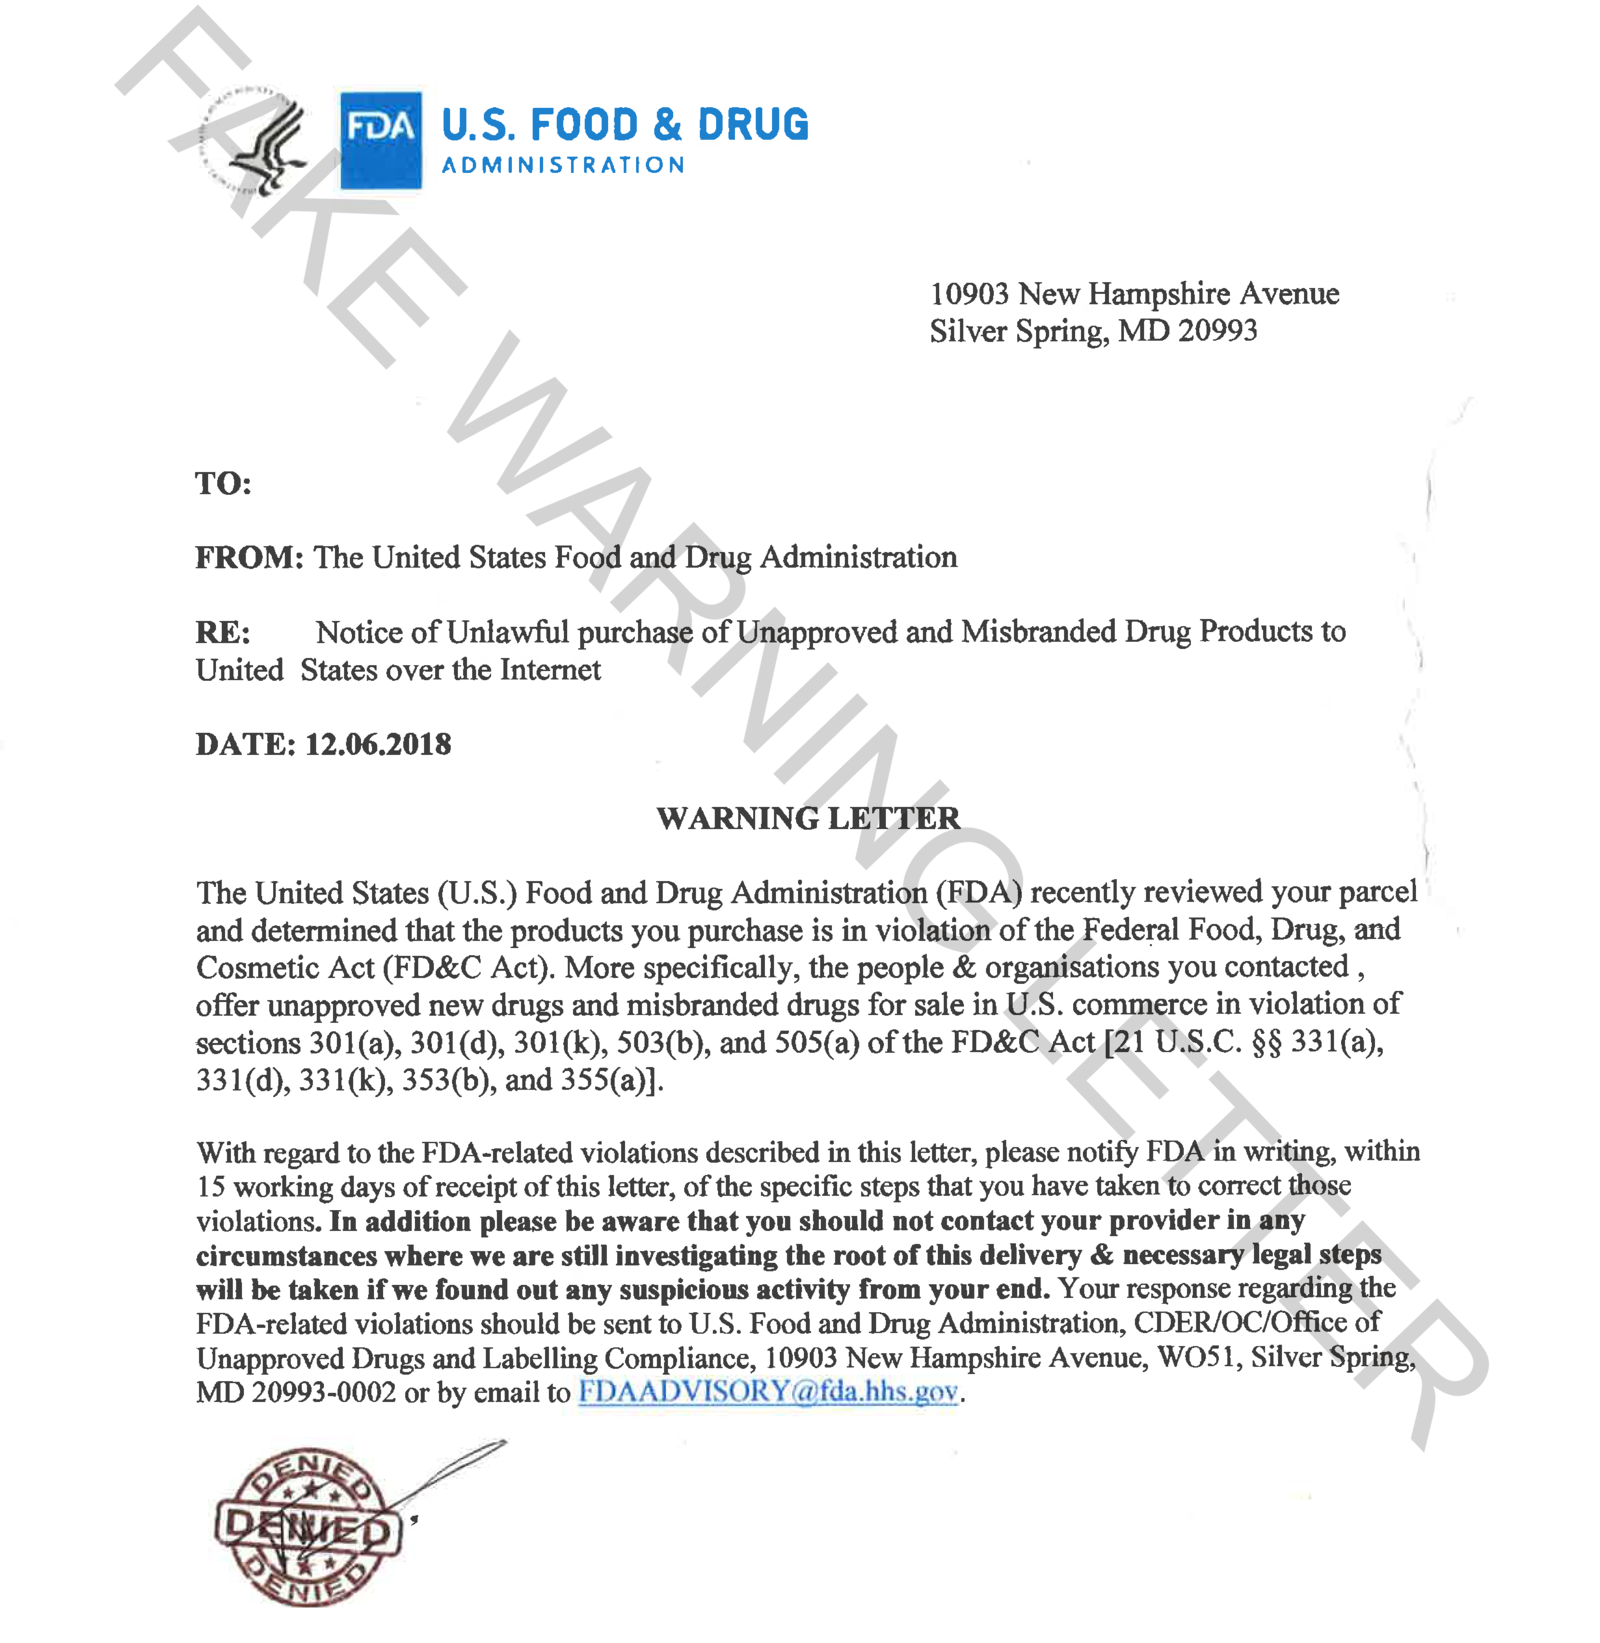 A fake FDA warning letter sent to a consumer.